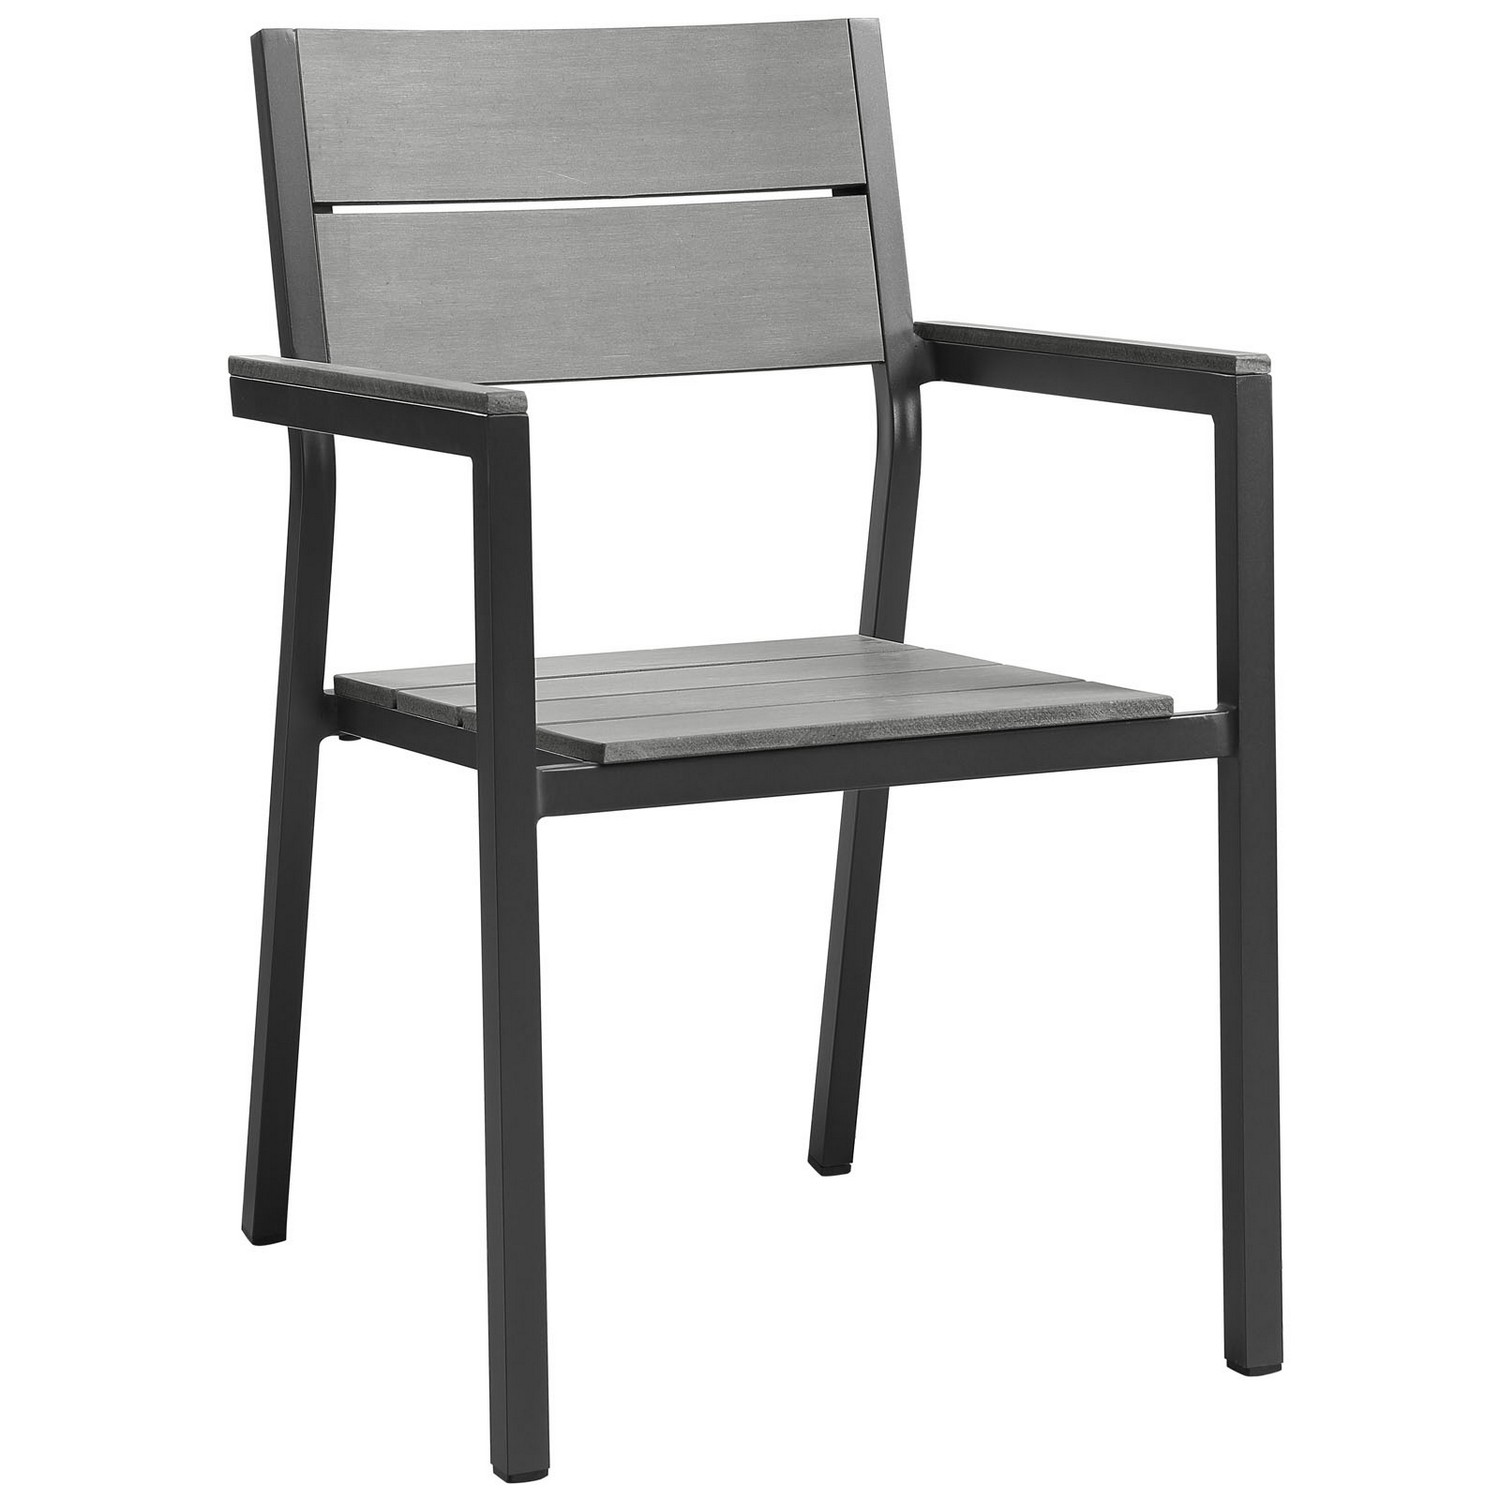 Modway Maine Dining Armchair Outdoor Patio Set of 2 - Brown/Gray